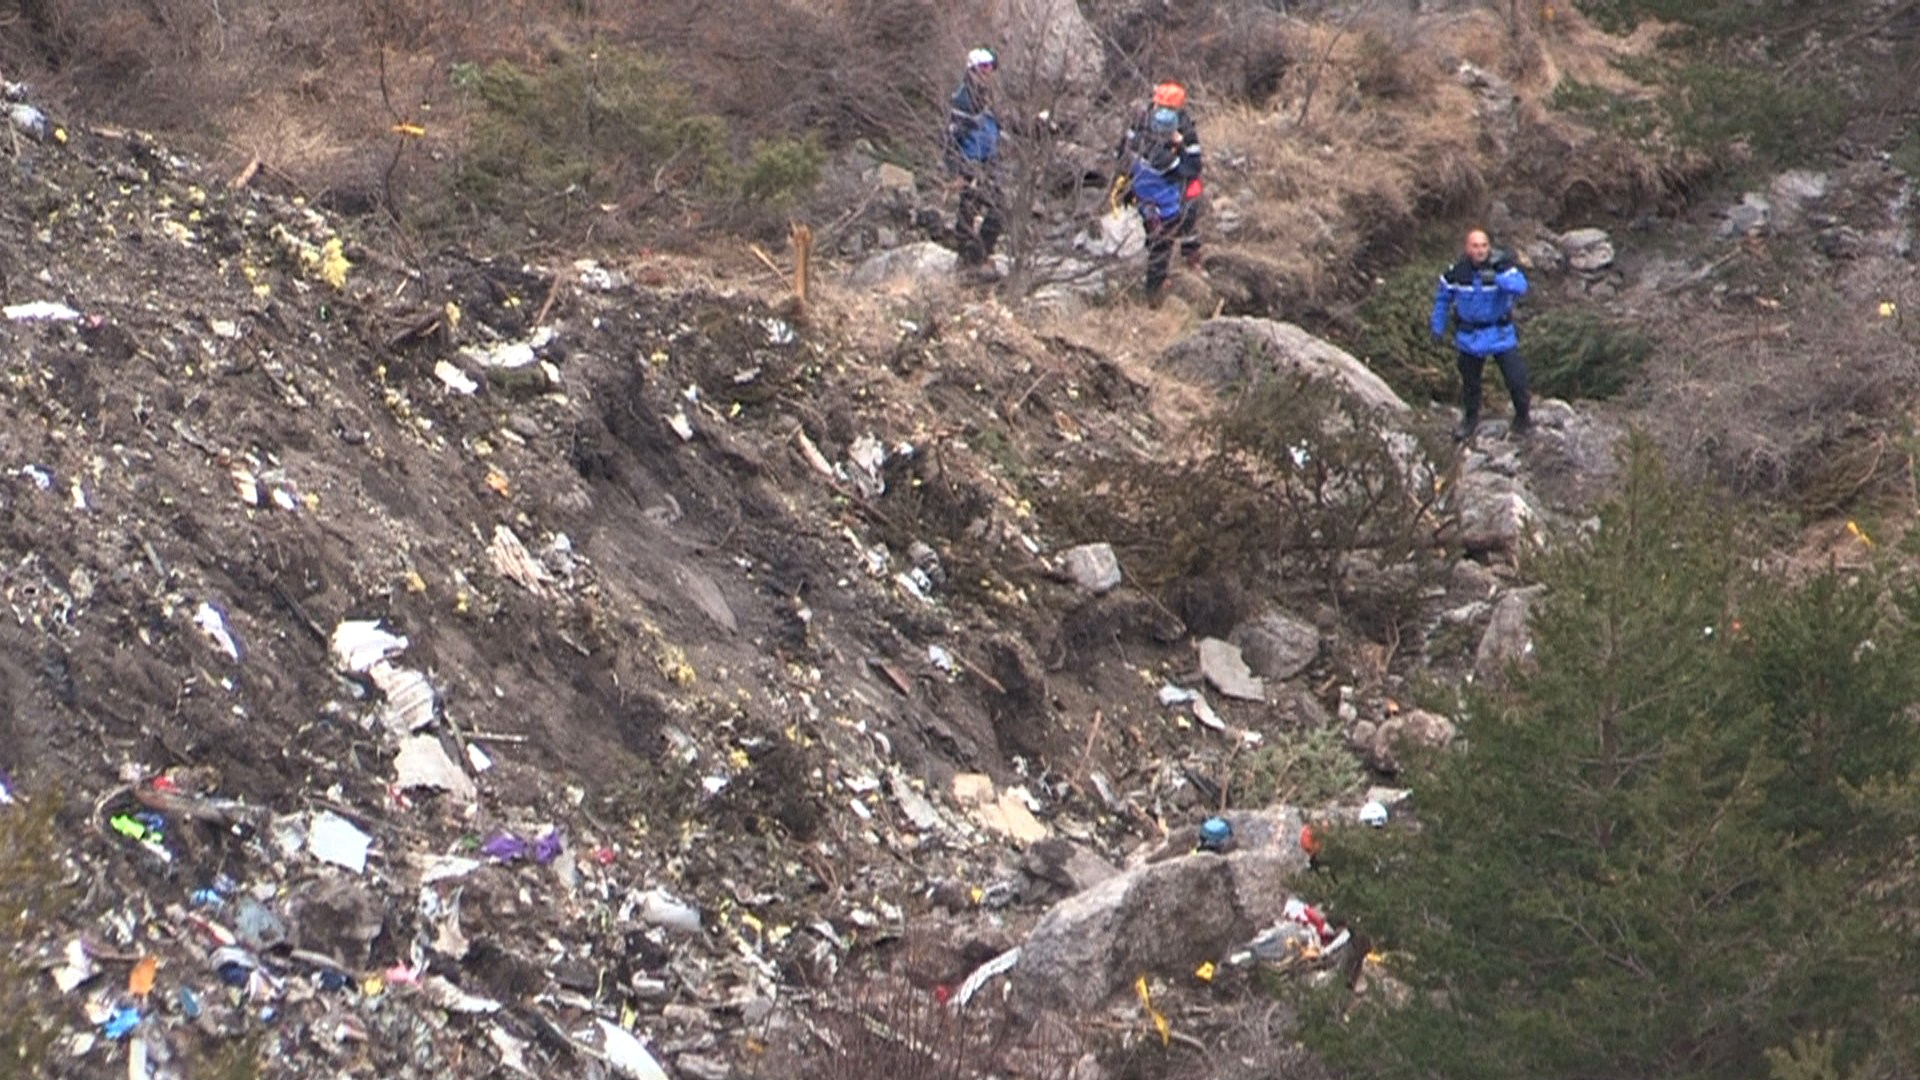 A screengrab taken from an AFP TV video on March 24, 2015 shows search and rescue personnel near scattered debris while making their way through the crash site of the Germanwings Airbus A320 that crashed in the French Alps above the southeastern town of Seyne. The plane, which had taken off from Barcelona in Spain and was headed for Dusseldorf in Germany, crashed earlier in the day with 150 people onboard. (Getty)